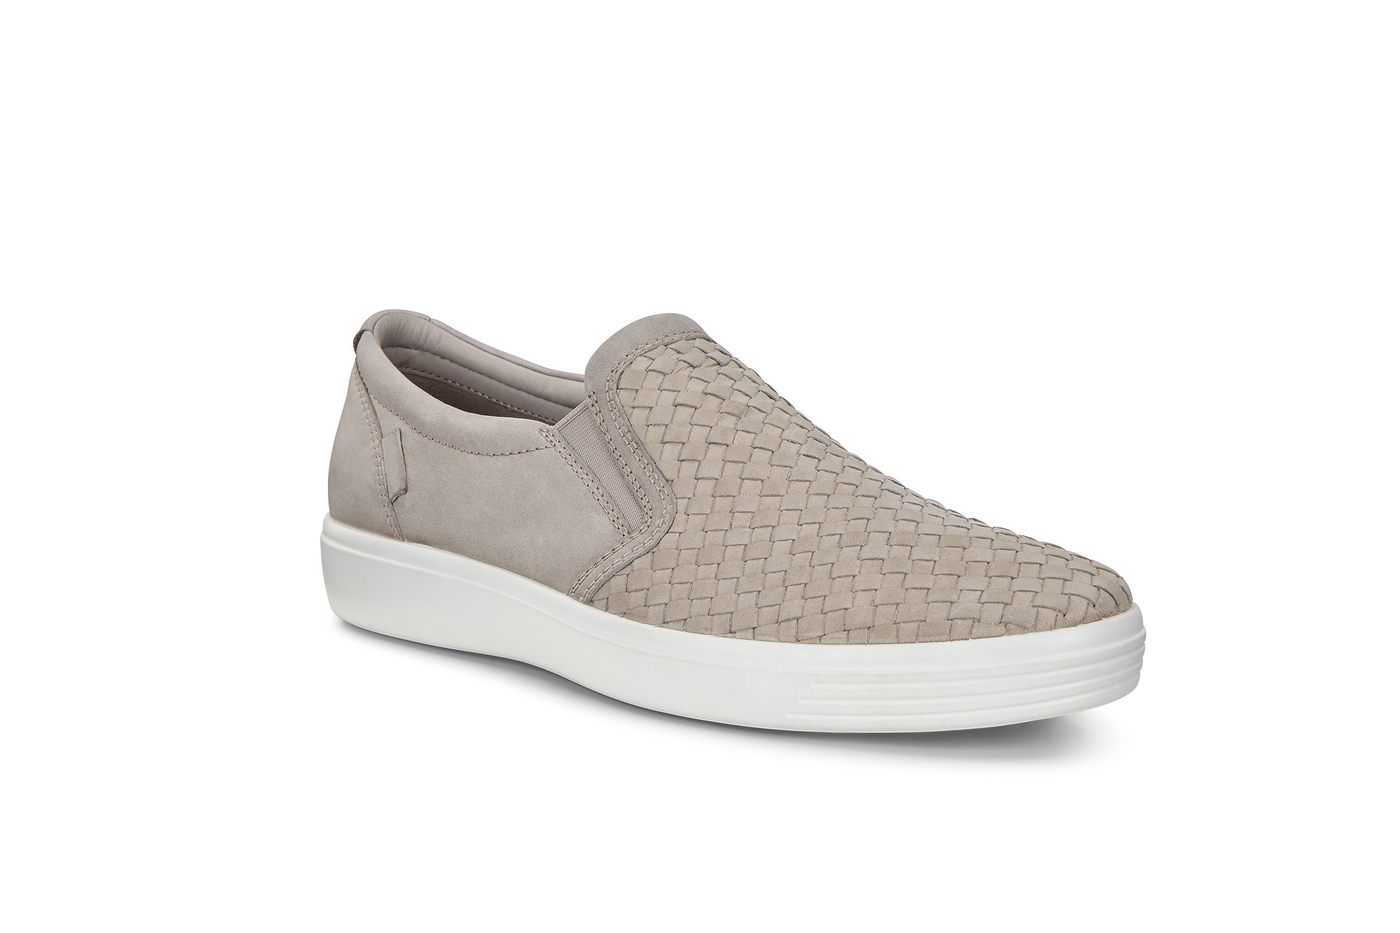 ECCO SOFT7 Mens Summer Slip-on